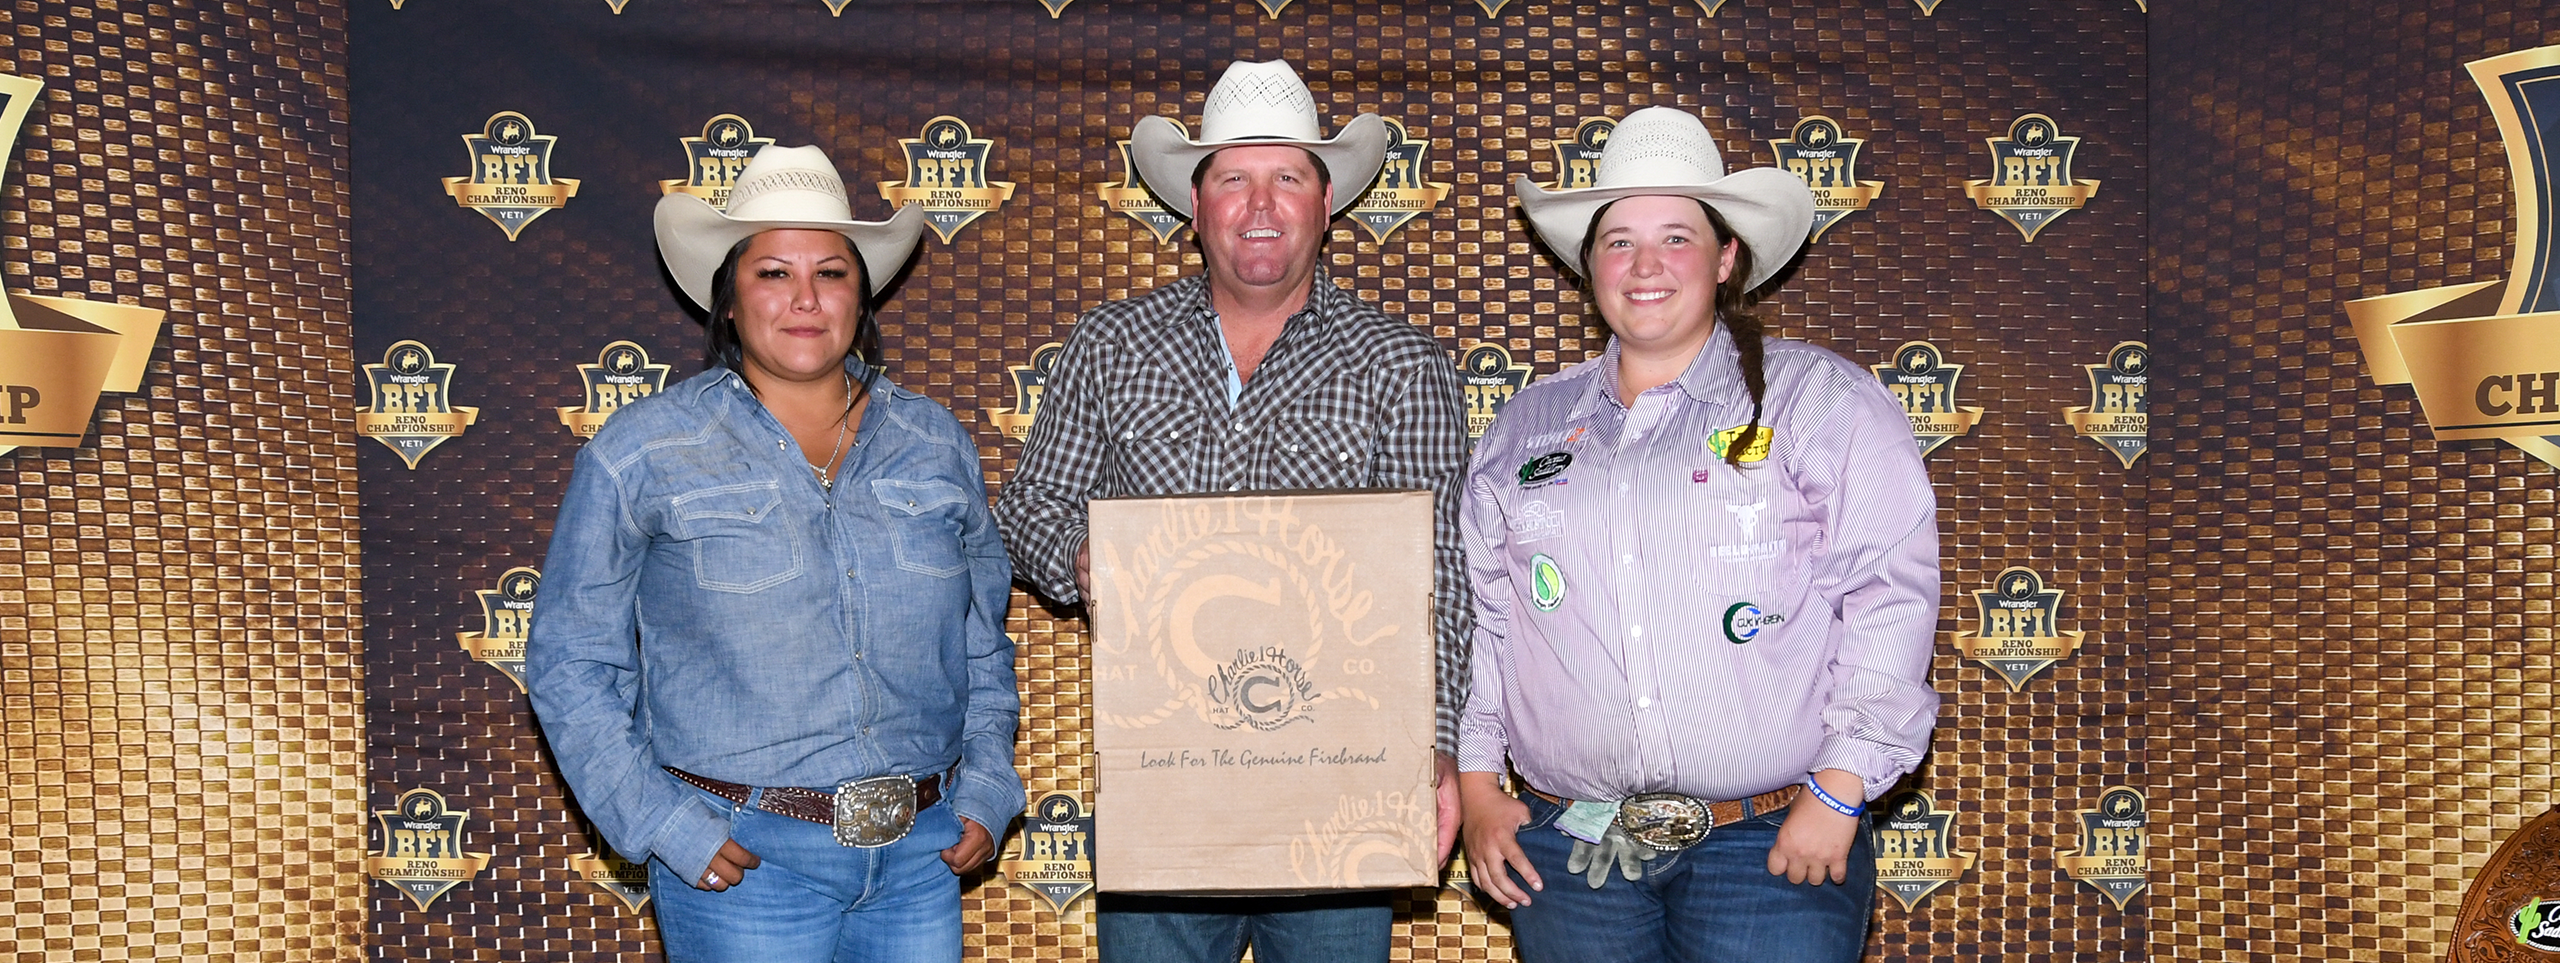 Charlie 1 Horse All-Girl Team Roping Results